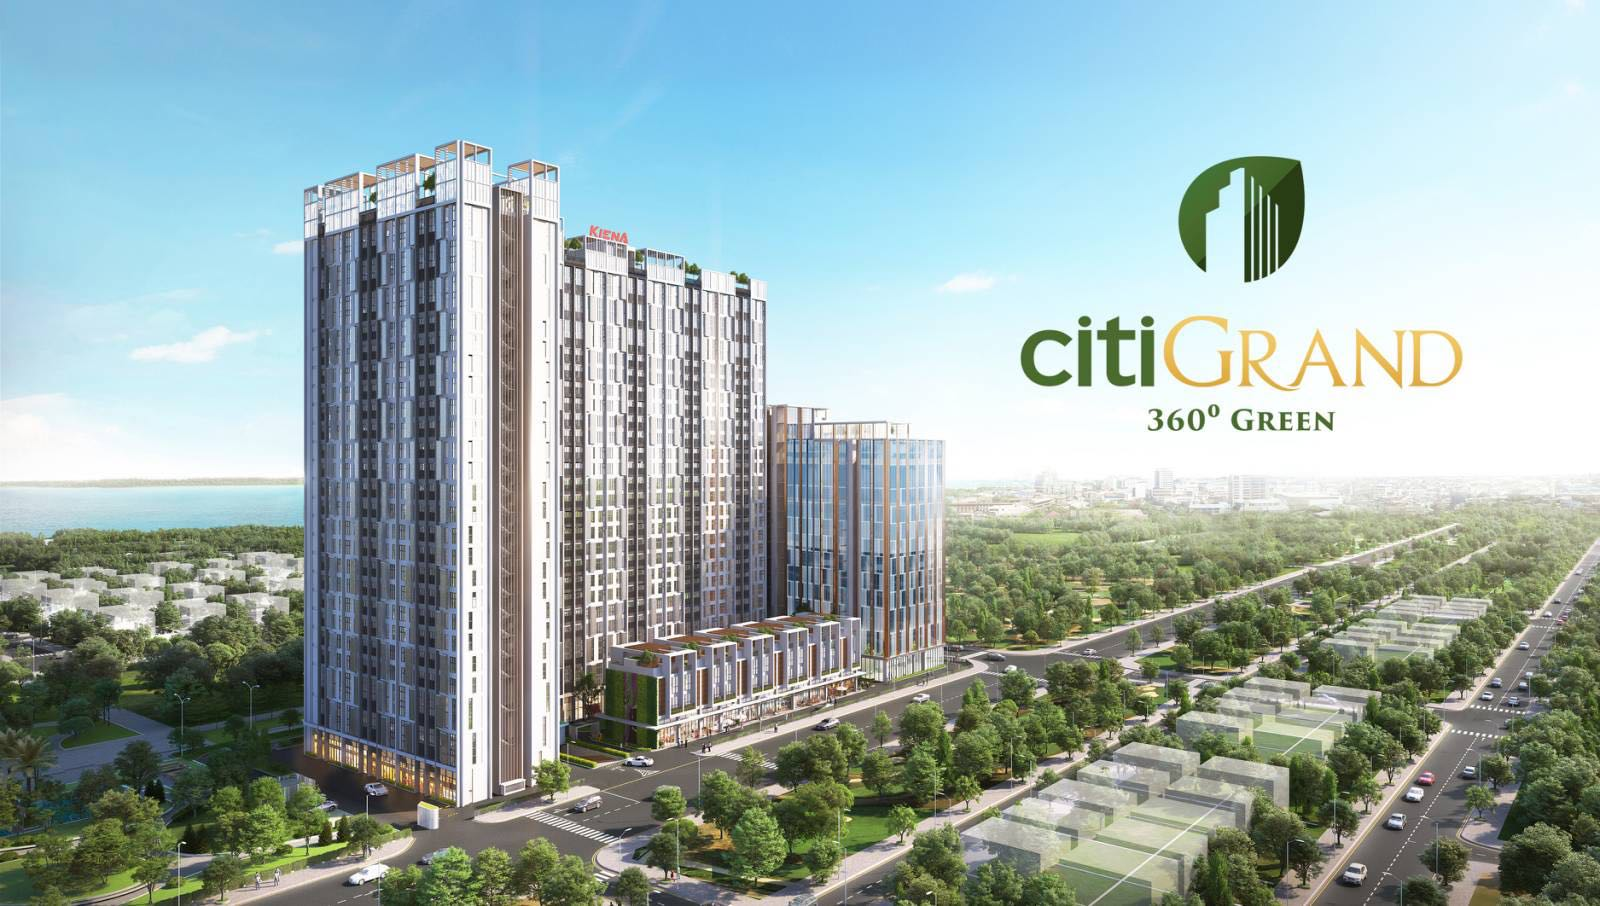 Citigrand; can ho citigrand; du an citigrand,; Citi Grand; Du an Citi Grand; can ho Citi Grand